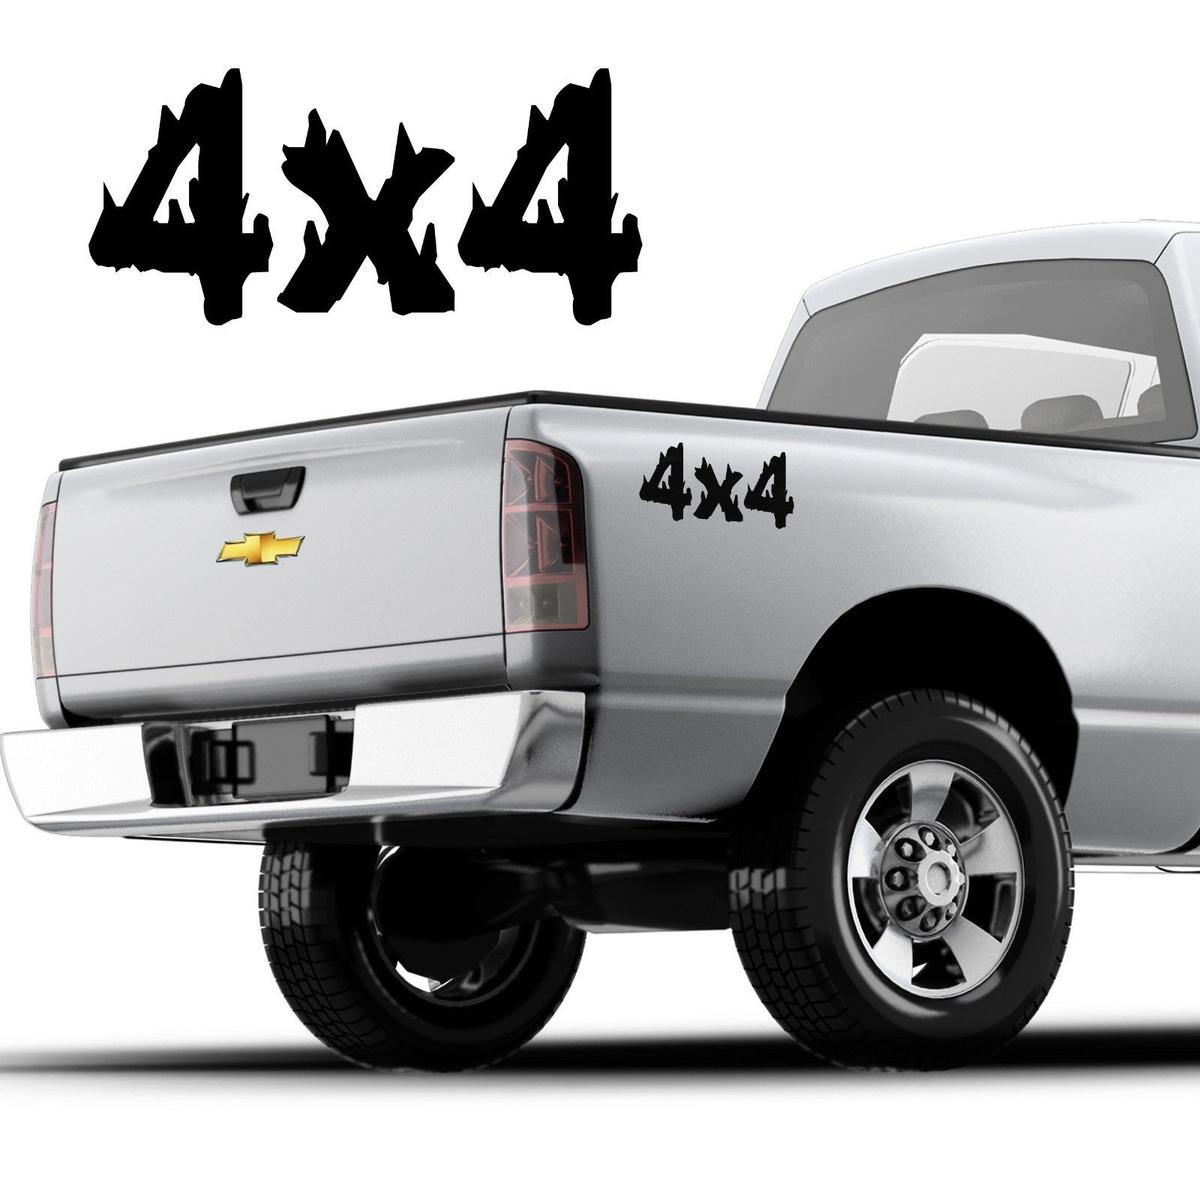 2019 for 4x4 decal graphics decal fire flame design fits ford gmc chevy silverado from redchinatown 4 52 dhgate com